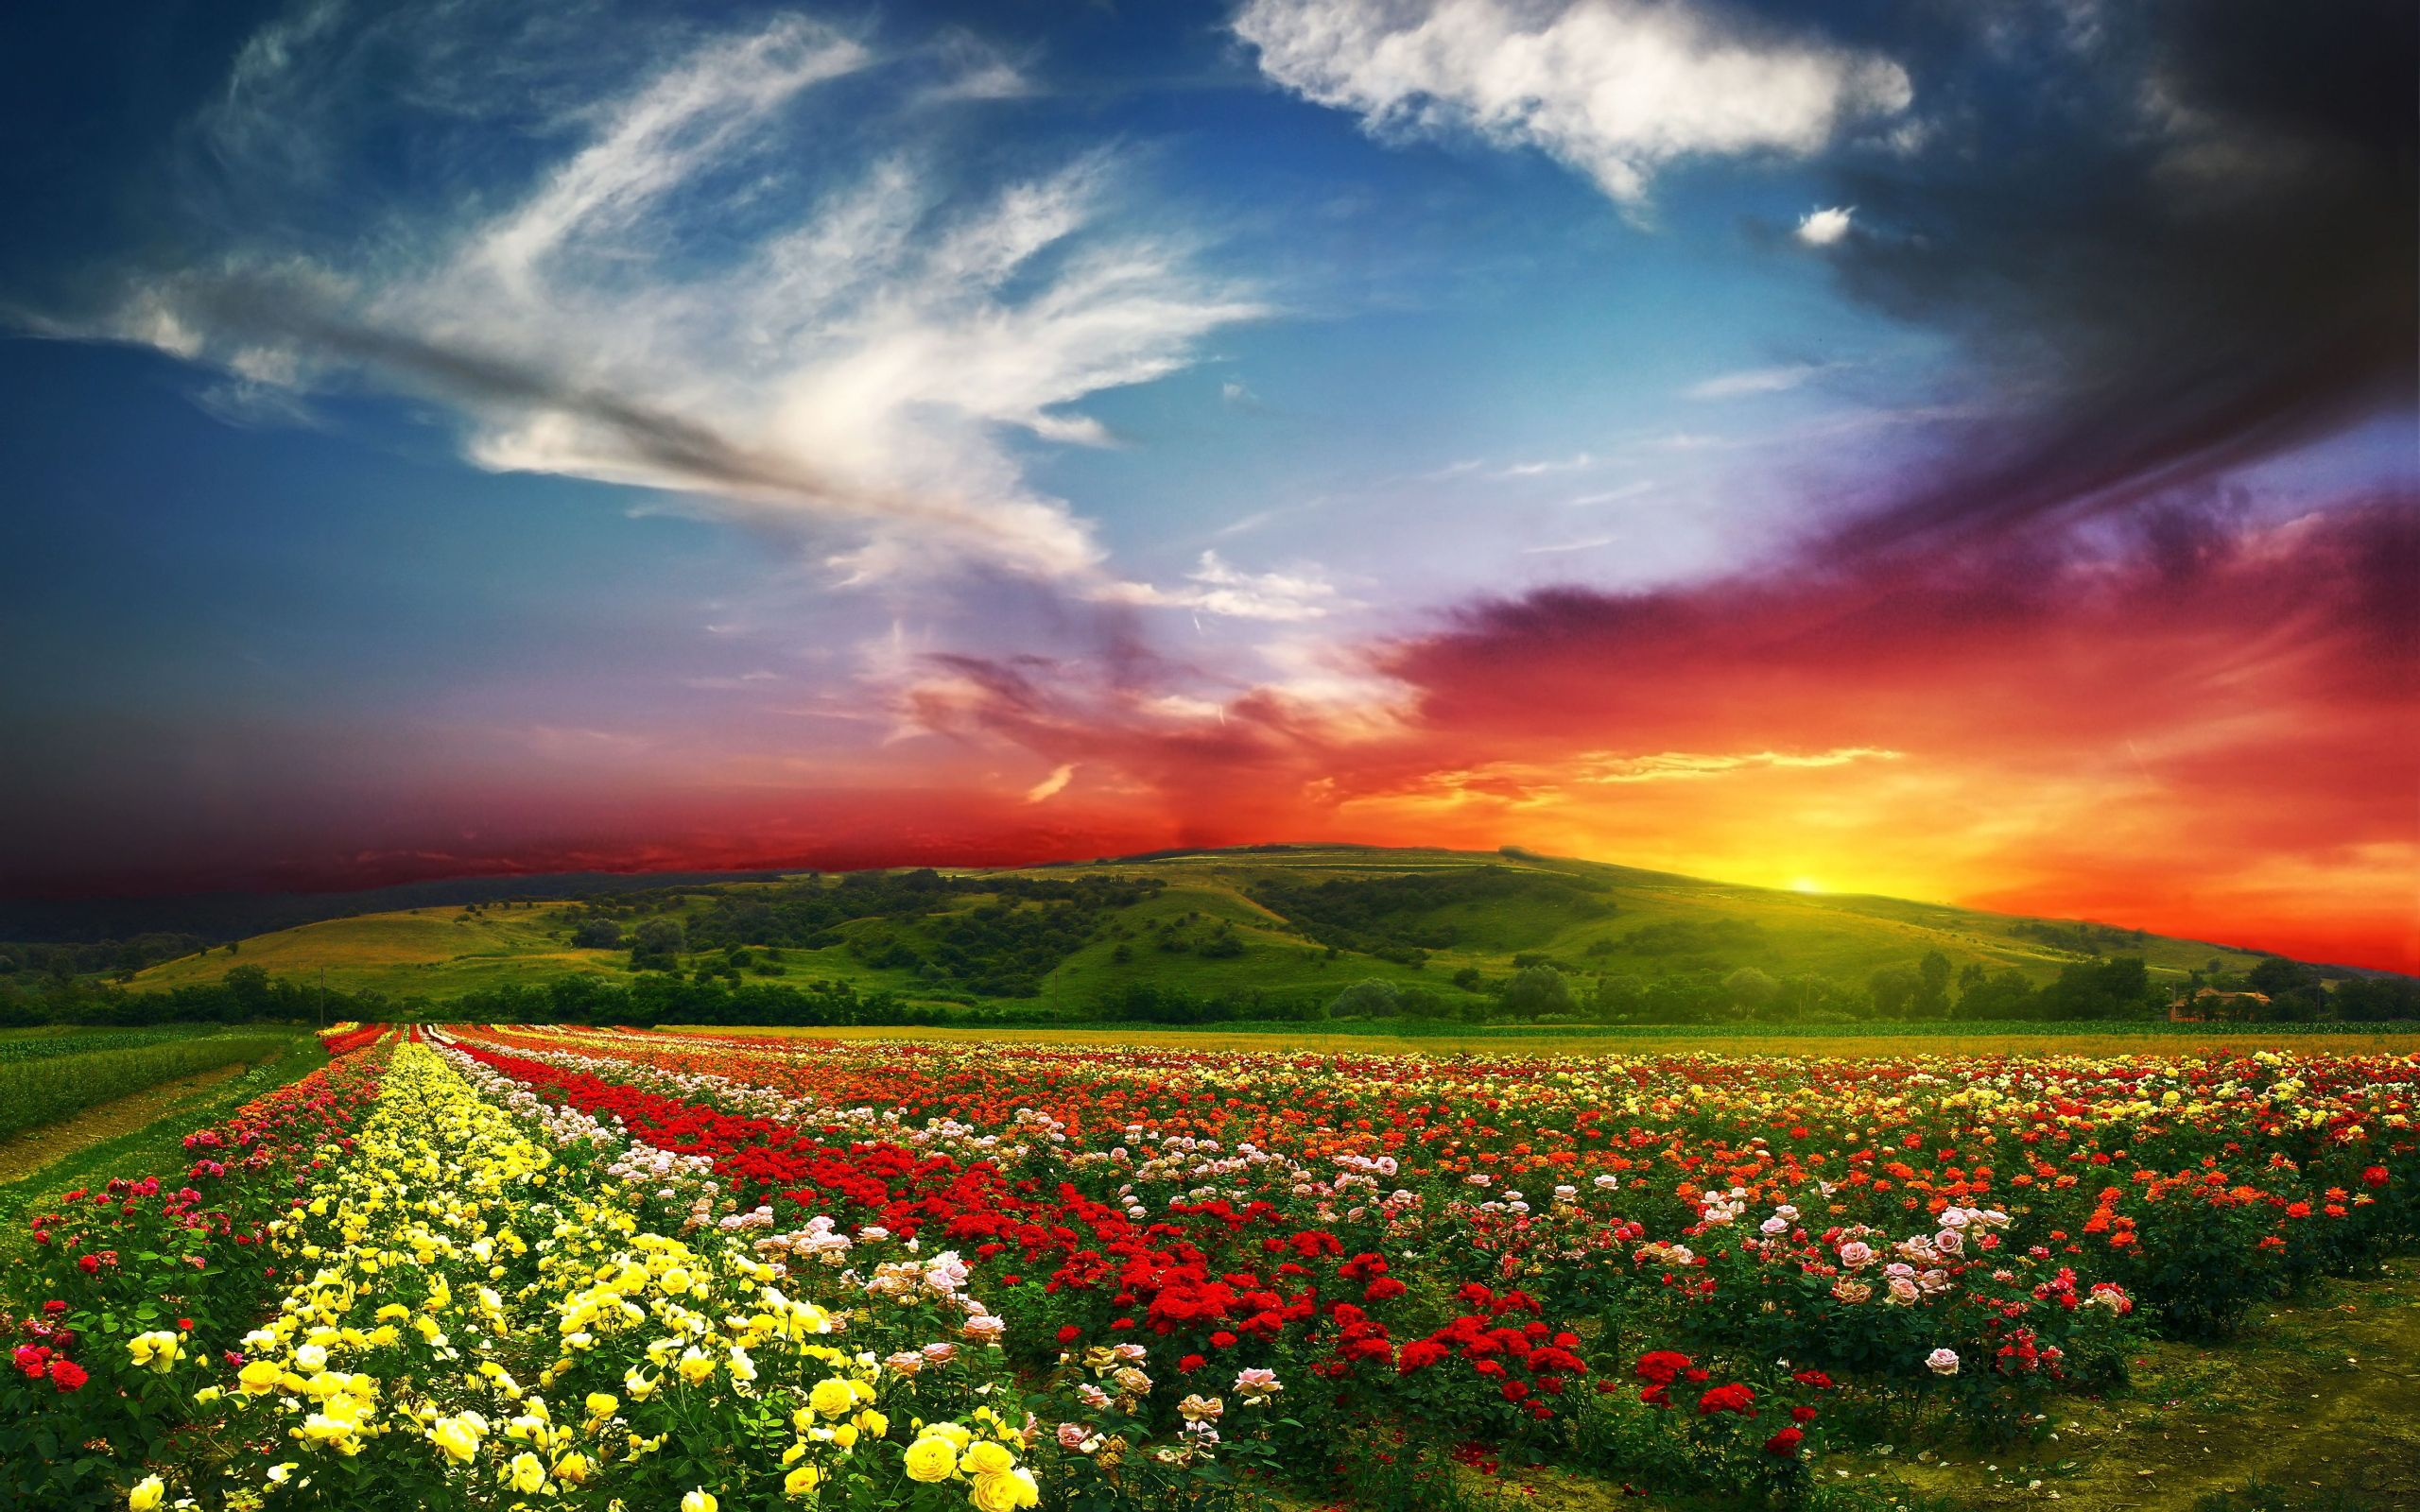 My Soul Is A Lock Without A Key Scenery Wallpaper Beautiful Images Nature Colorful Landscape